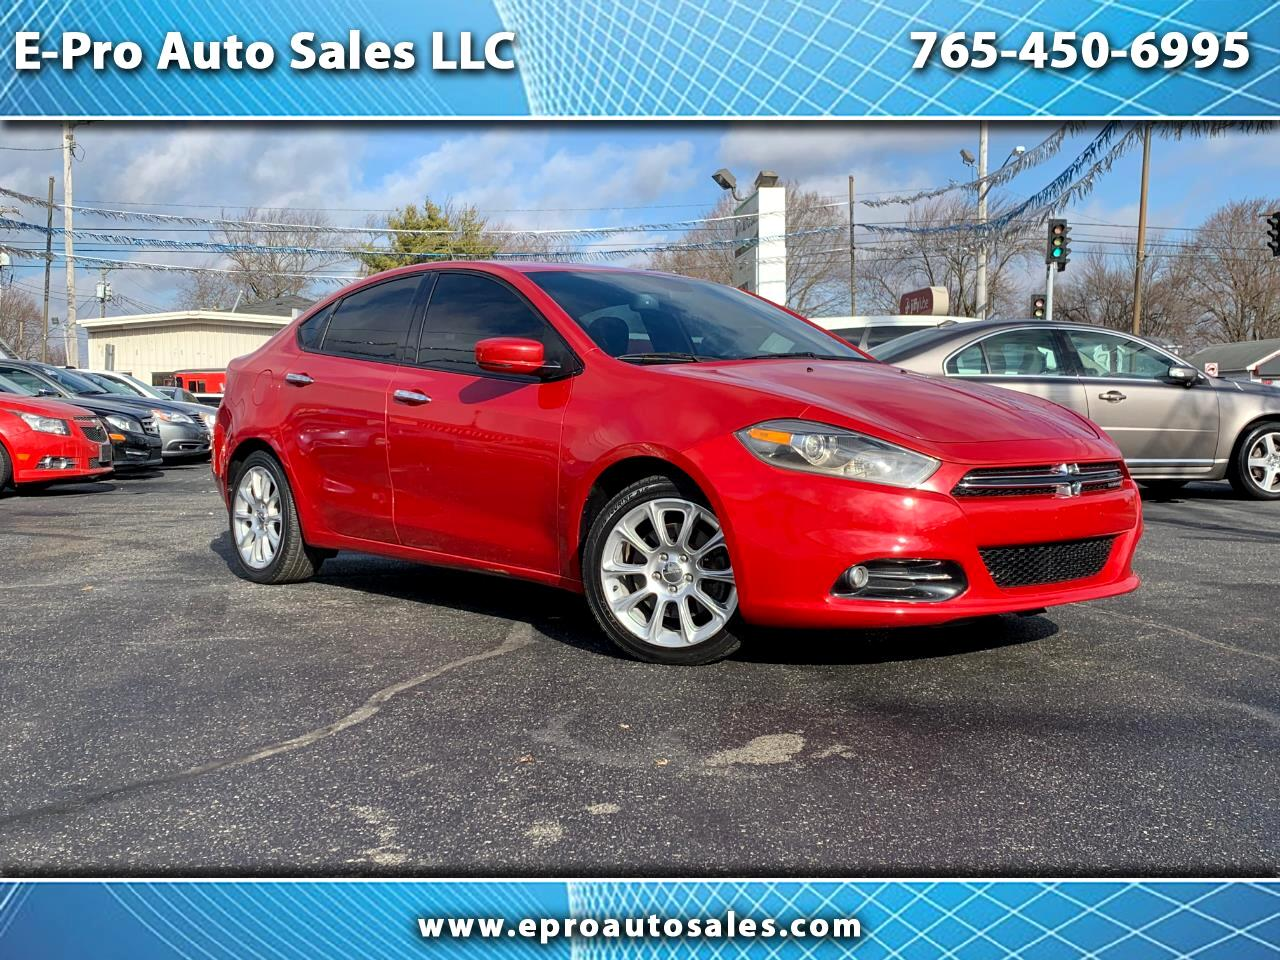 Used 2013 Dodge Dart Sold In Kokomo In 46901 E Pro Auto Sales Llc